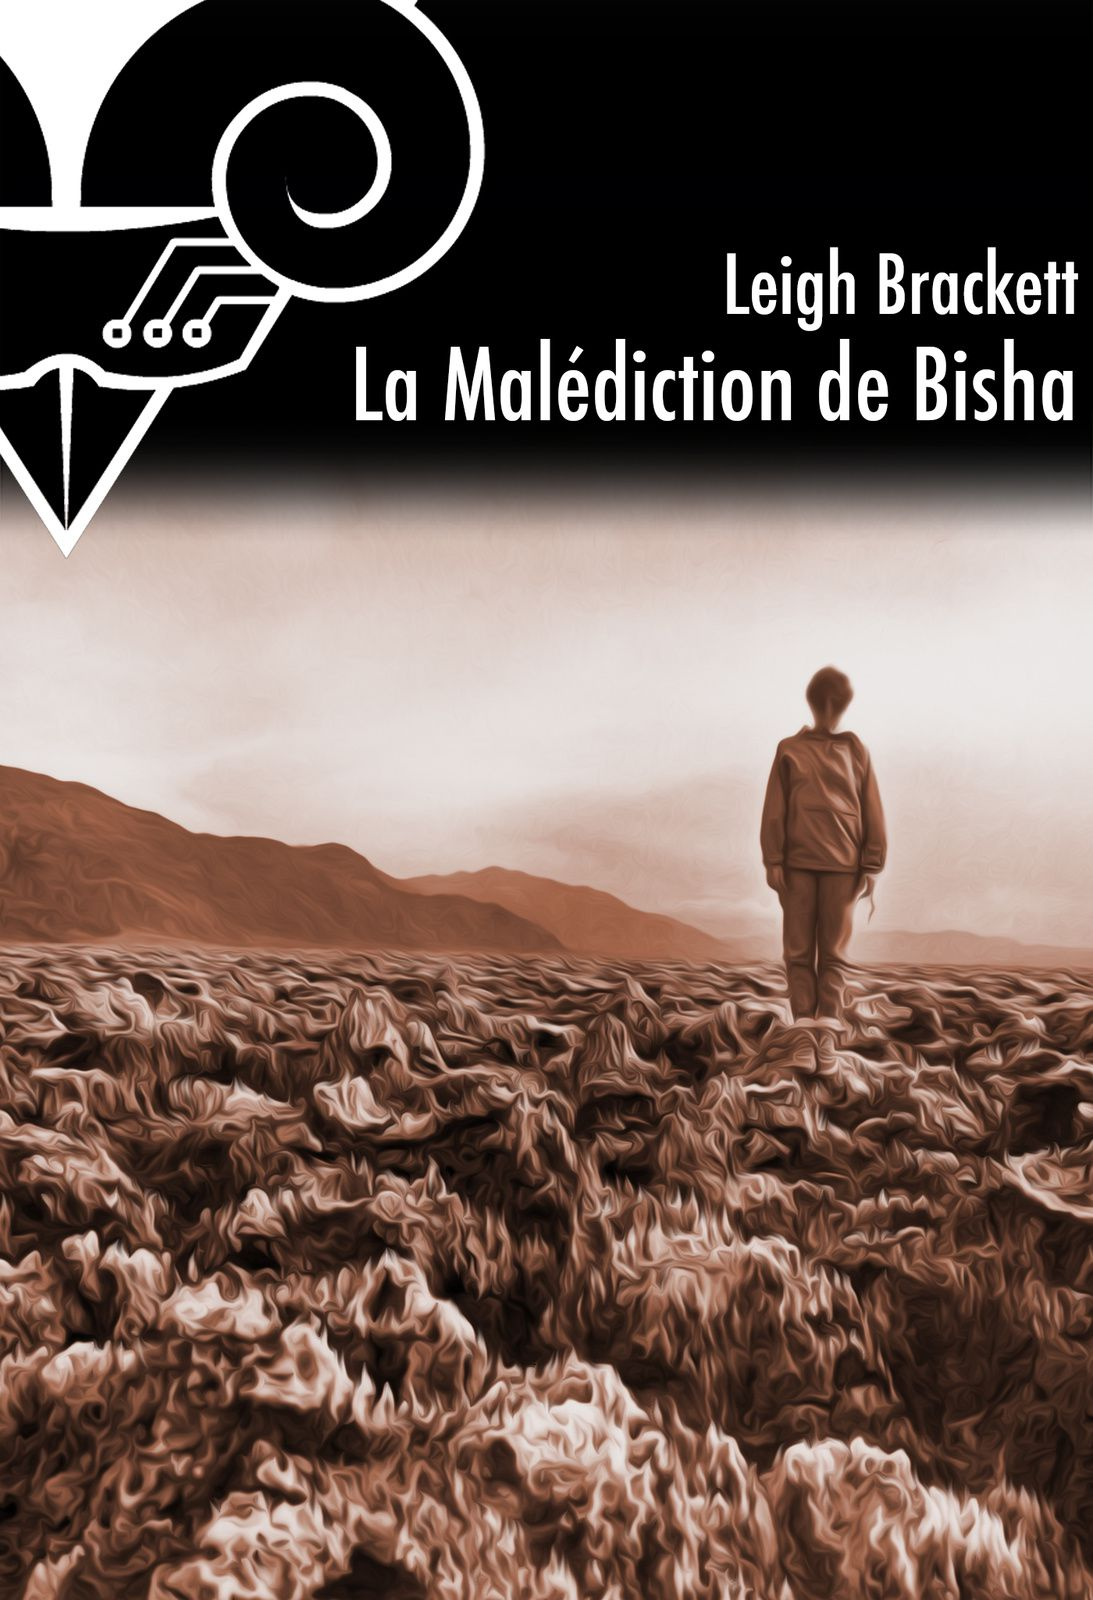 La malédiction de Bisha - Leigh BRACKETT (Mars Minus Bisha, 1954), traduction de Pierre-Paul DURASTANTI, Le Bélial', 2014